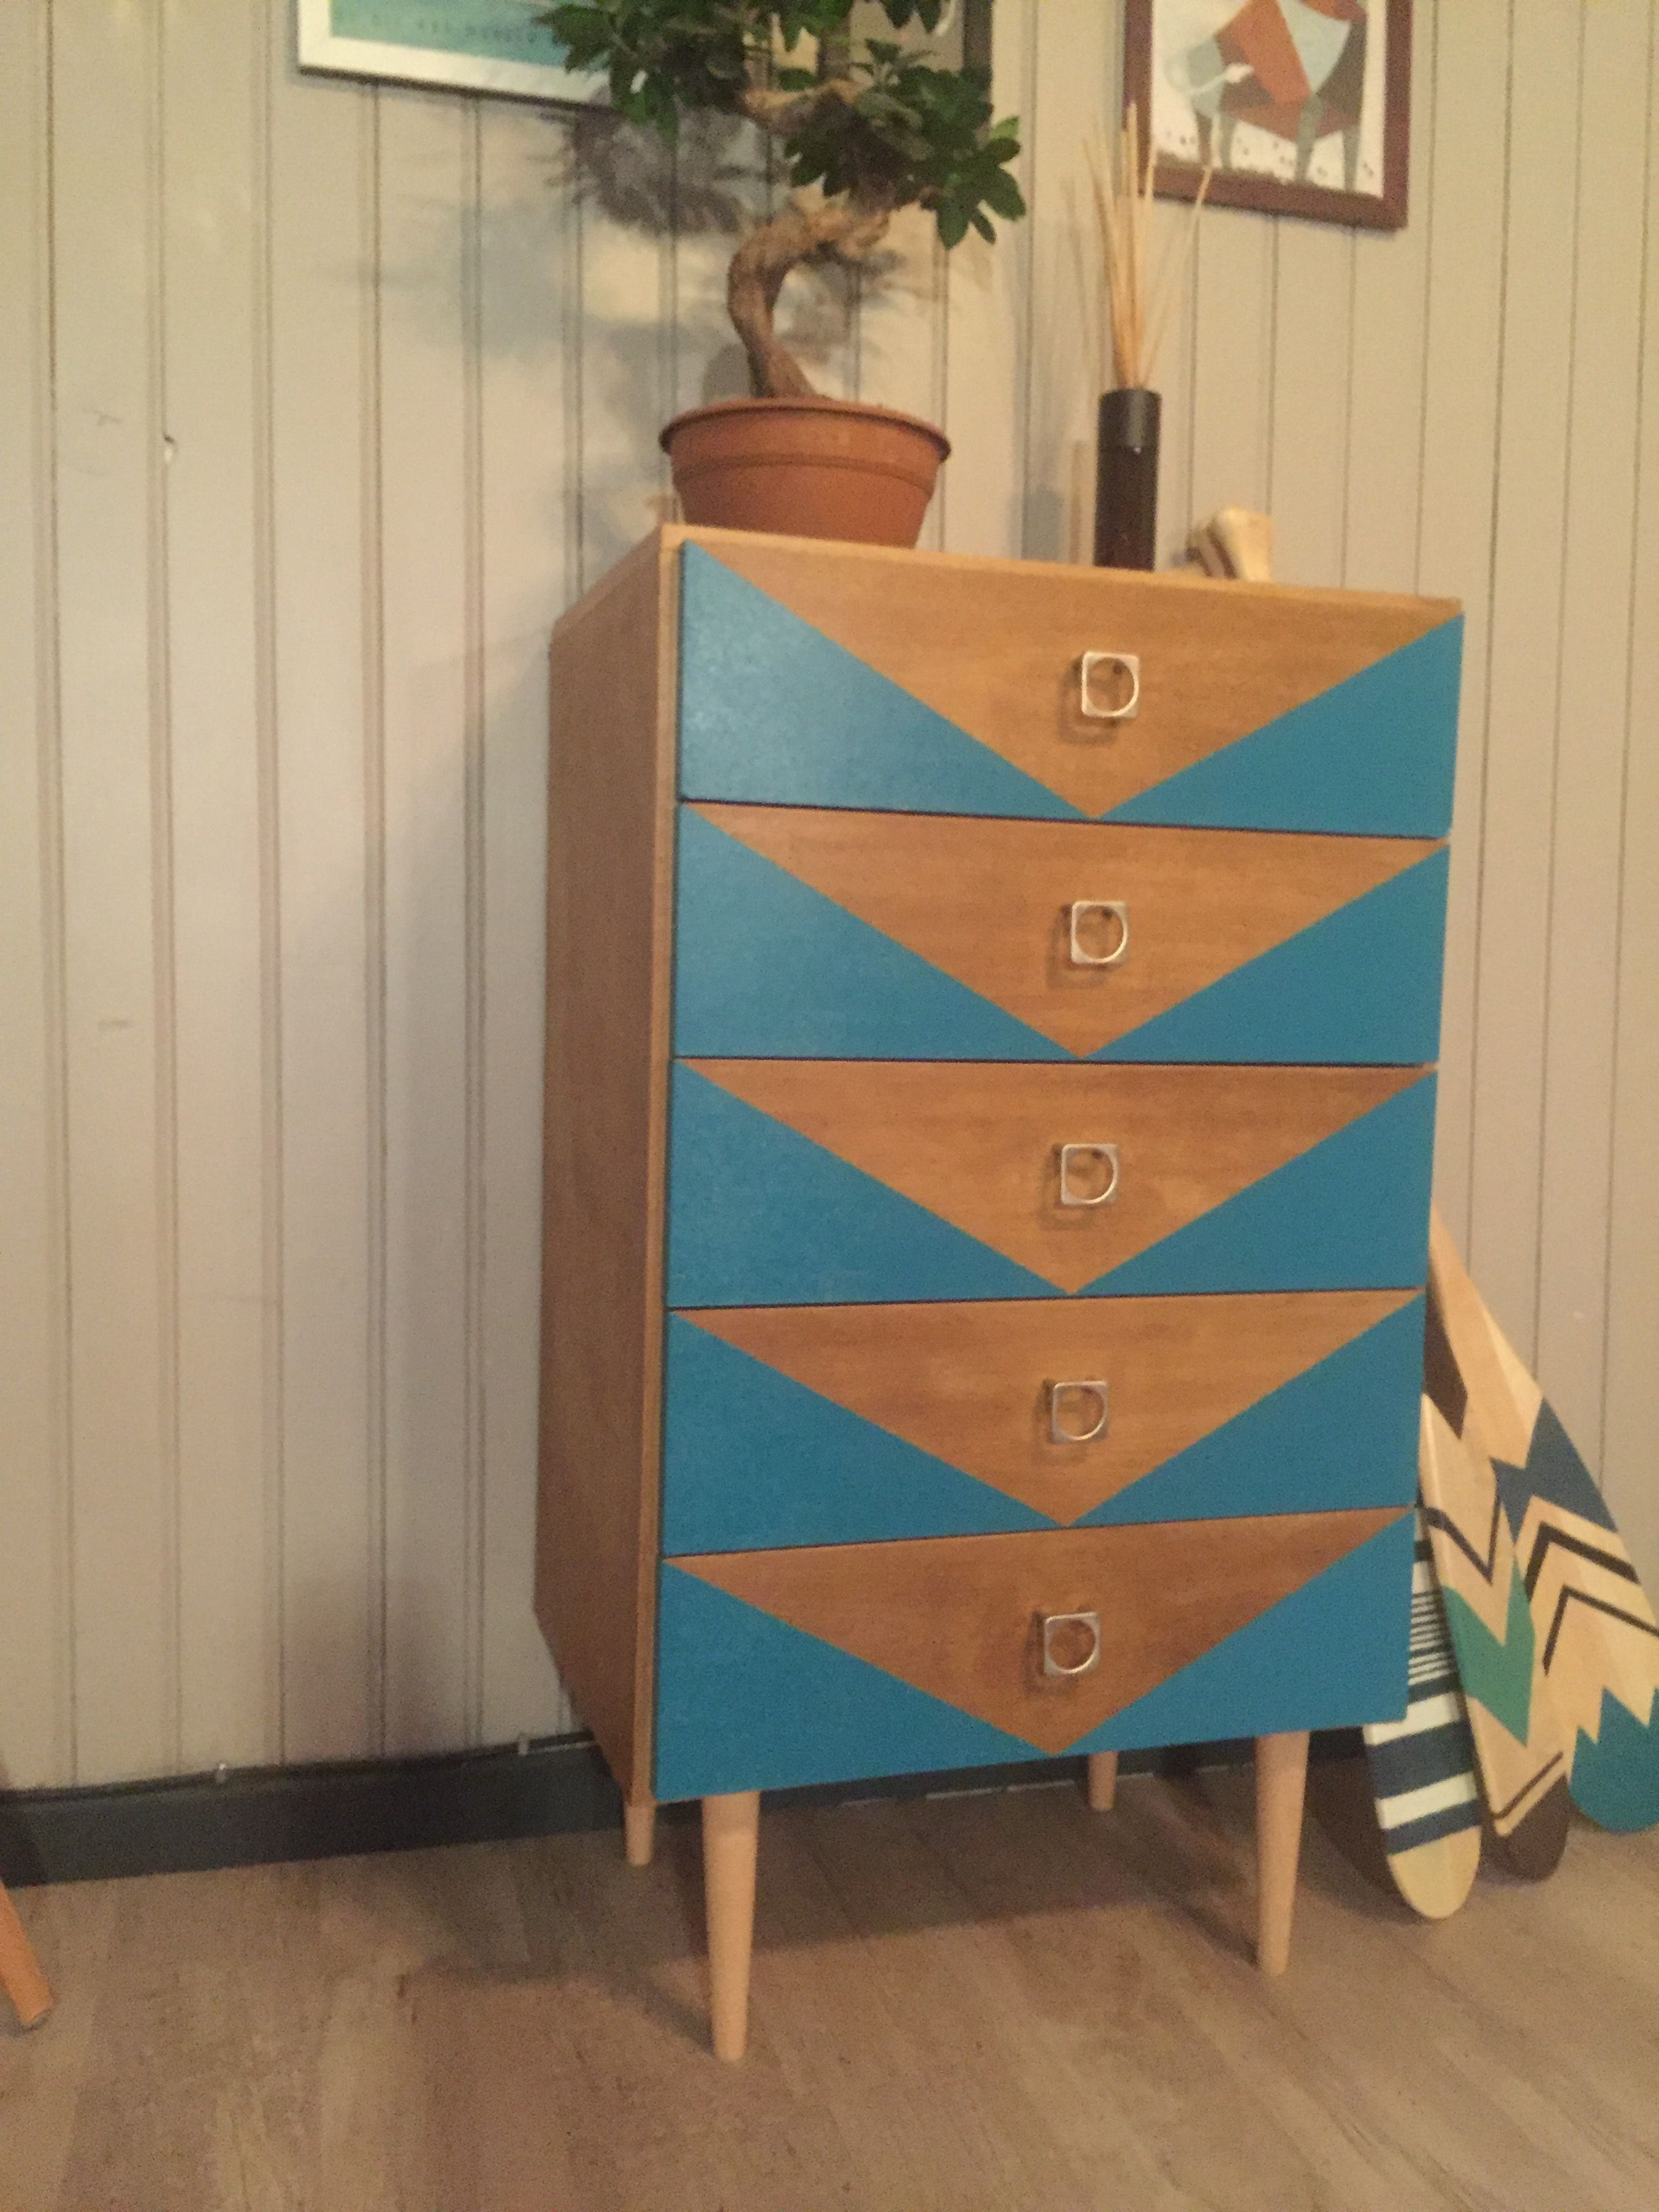 Petite Commode Vintage Relookee 3 4 Furniture Projects Pinterest